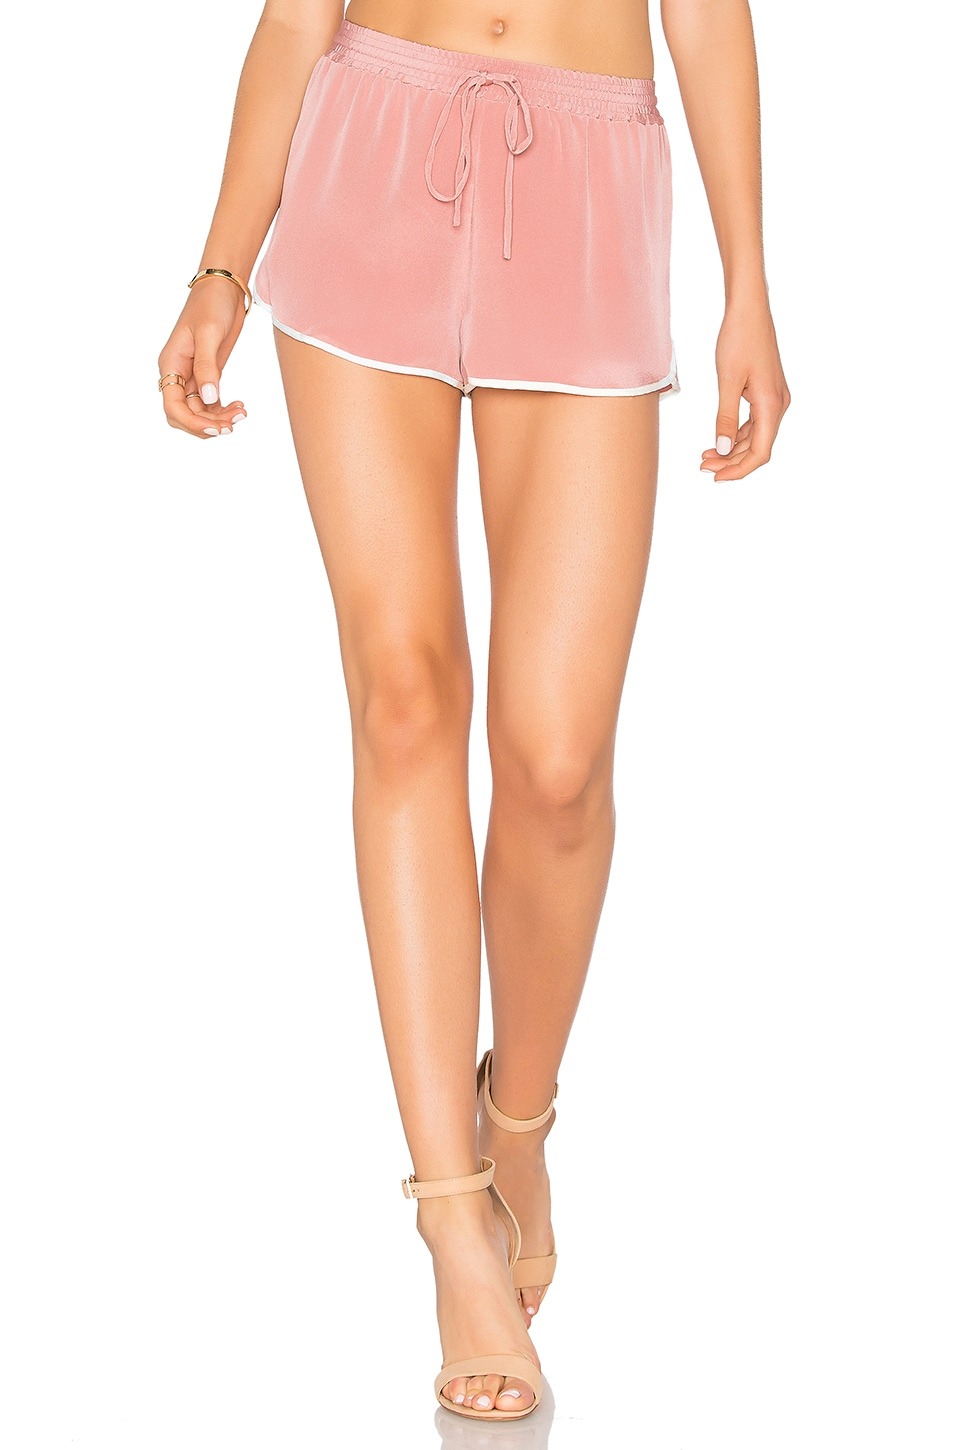 L'Academie x REVOLVE The Silk Short in Nude